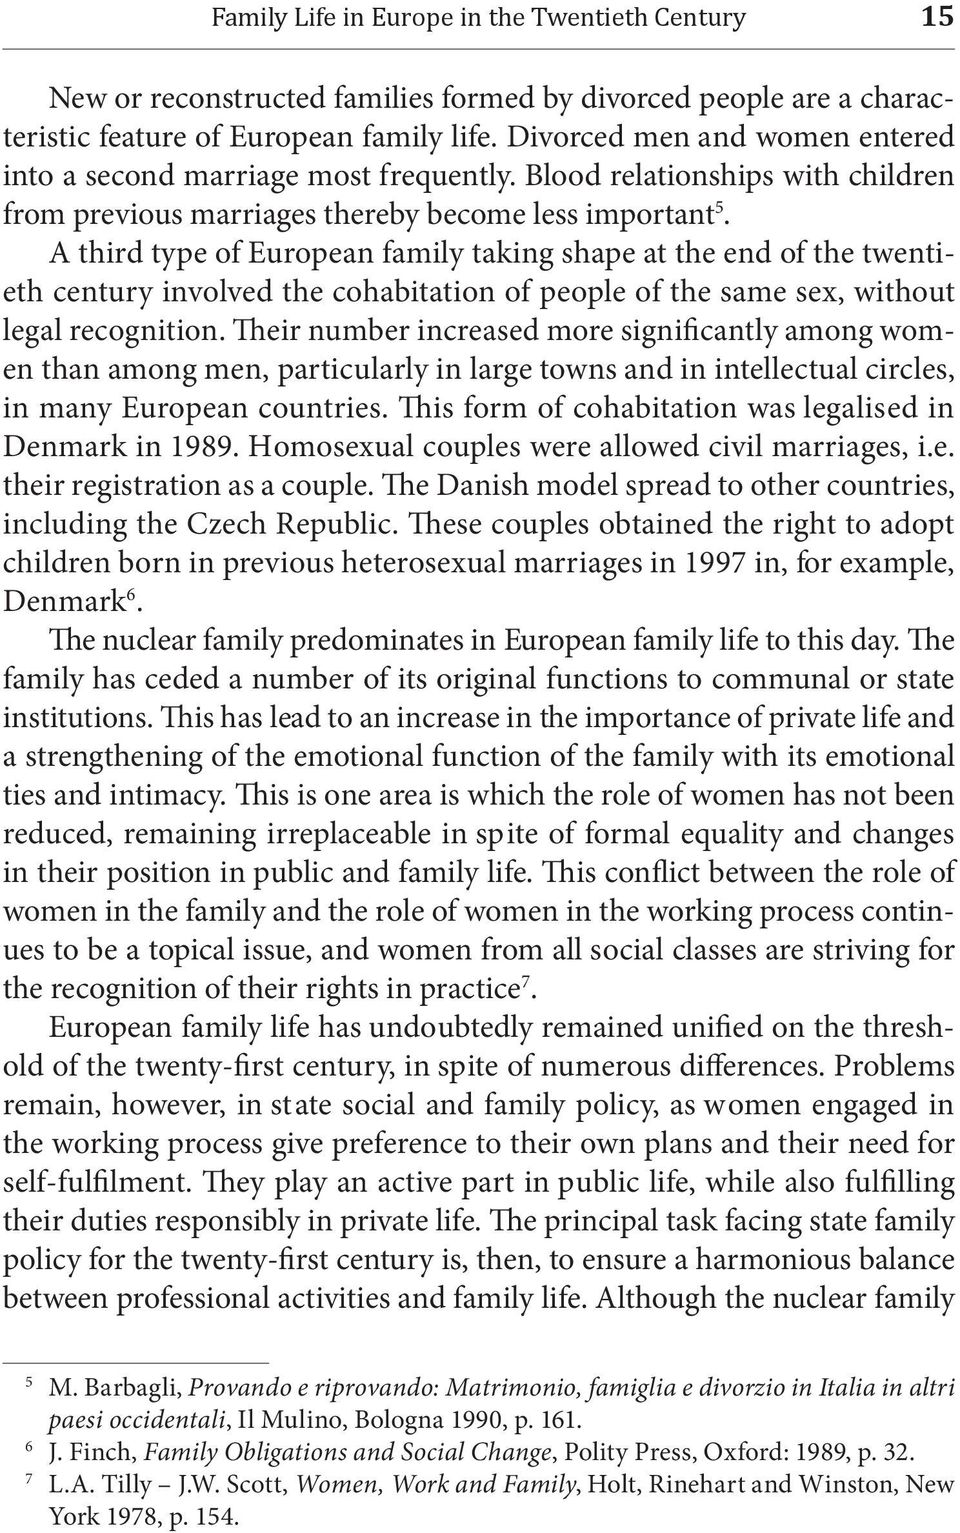 A third type of European family taking shape at the end of the twentieth century involved the cohabitation of people of the same sex, without legal recognition.